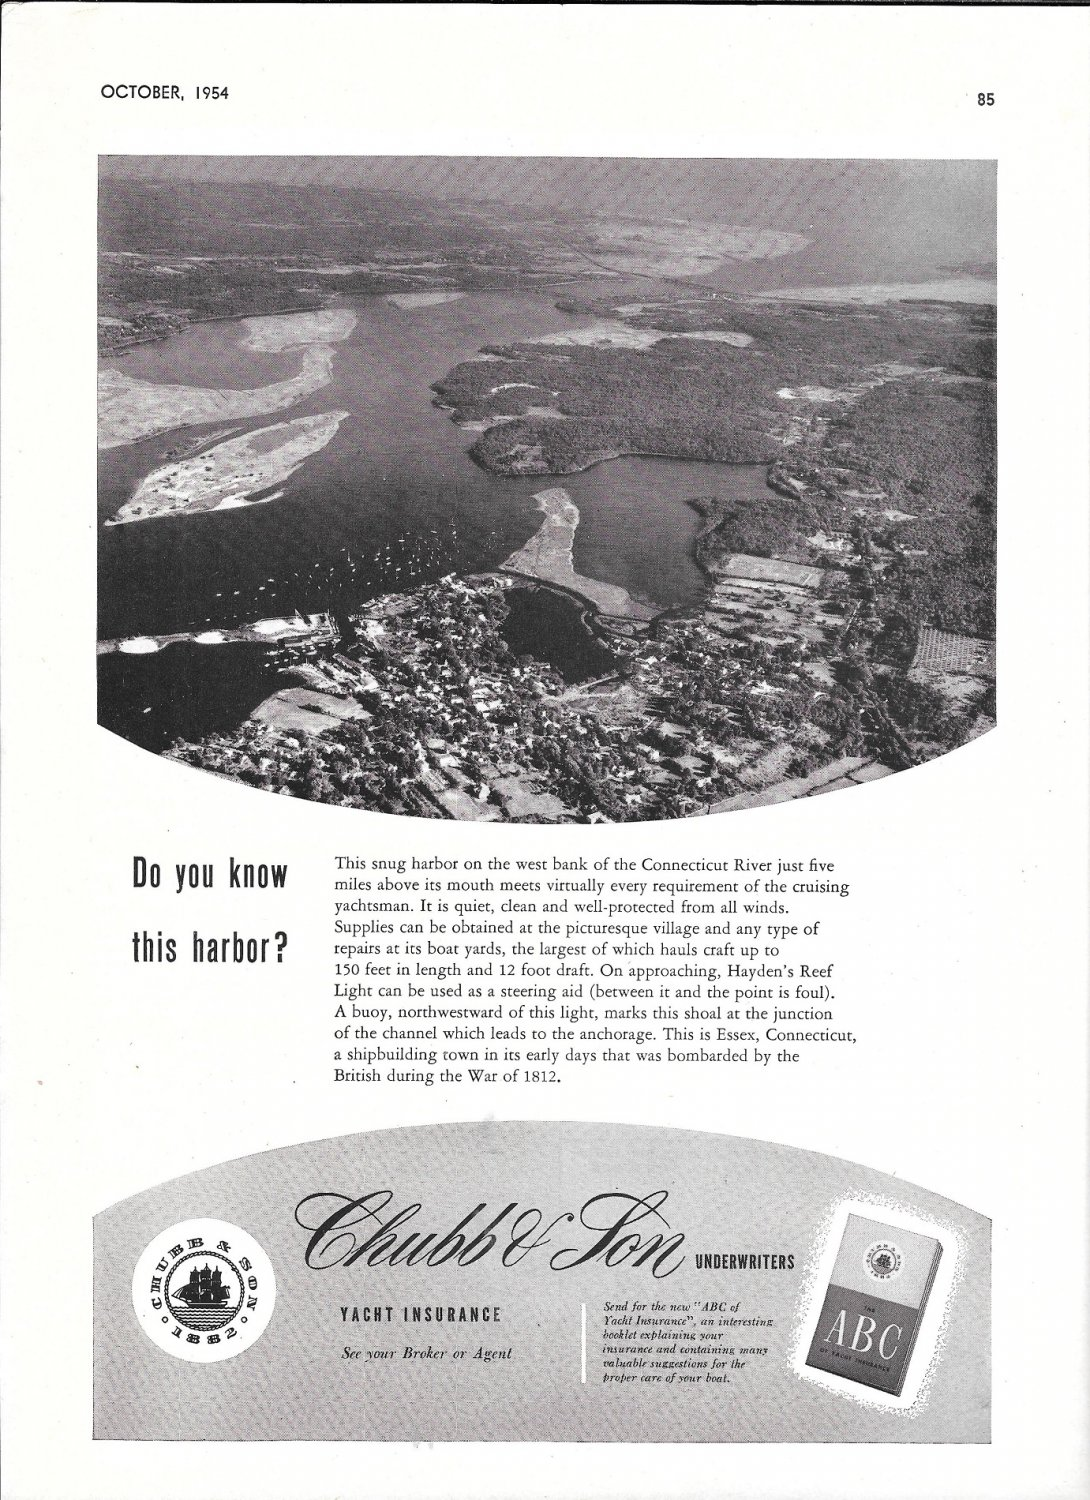 1954 Chubb Insurance Ad- Great Photo of Essex, Connecticut